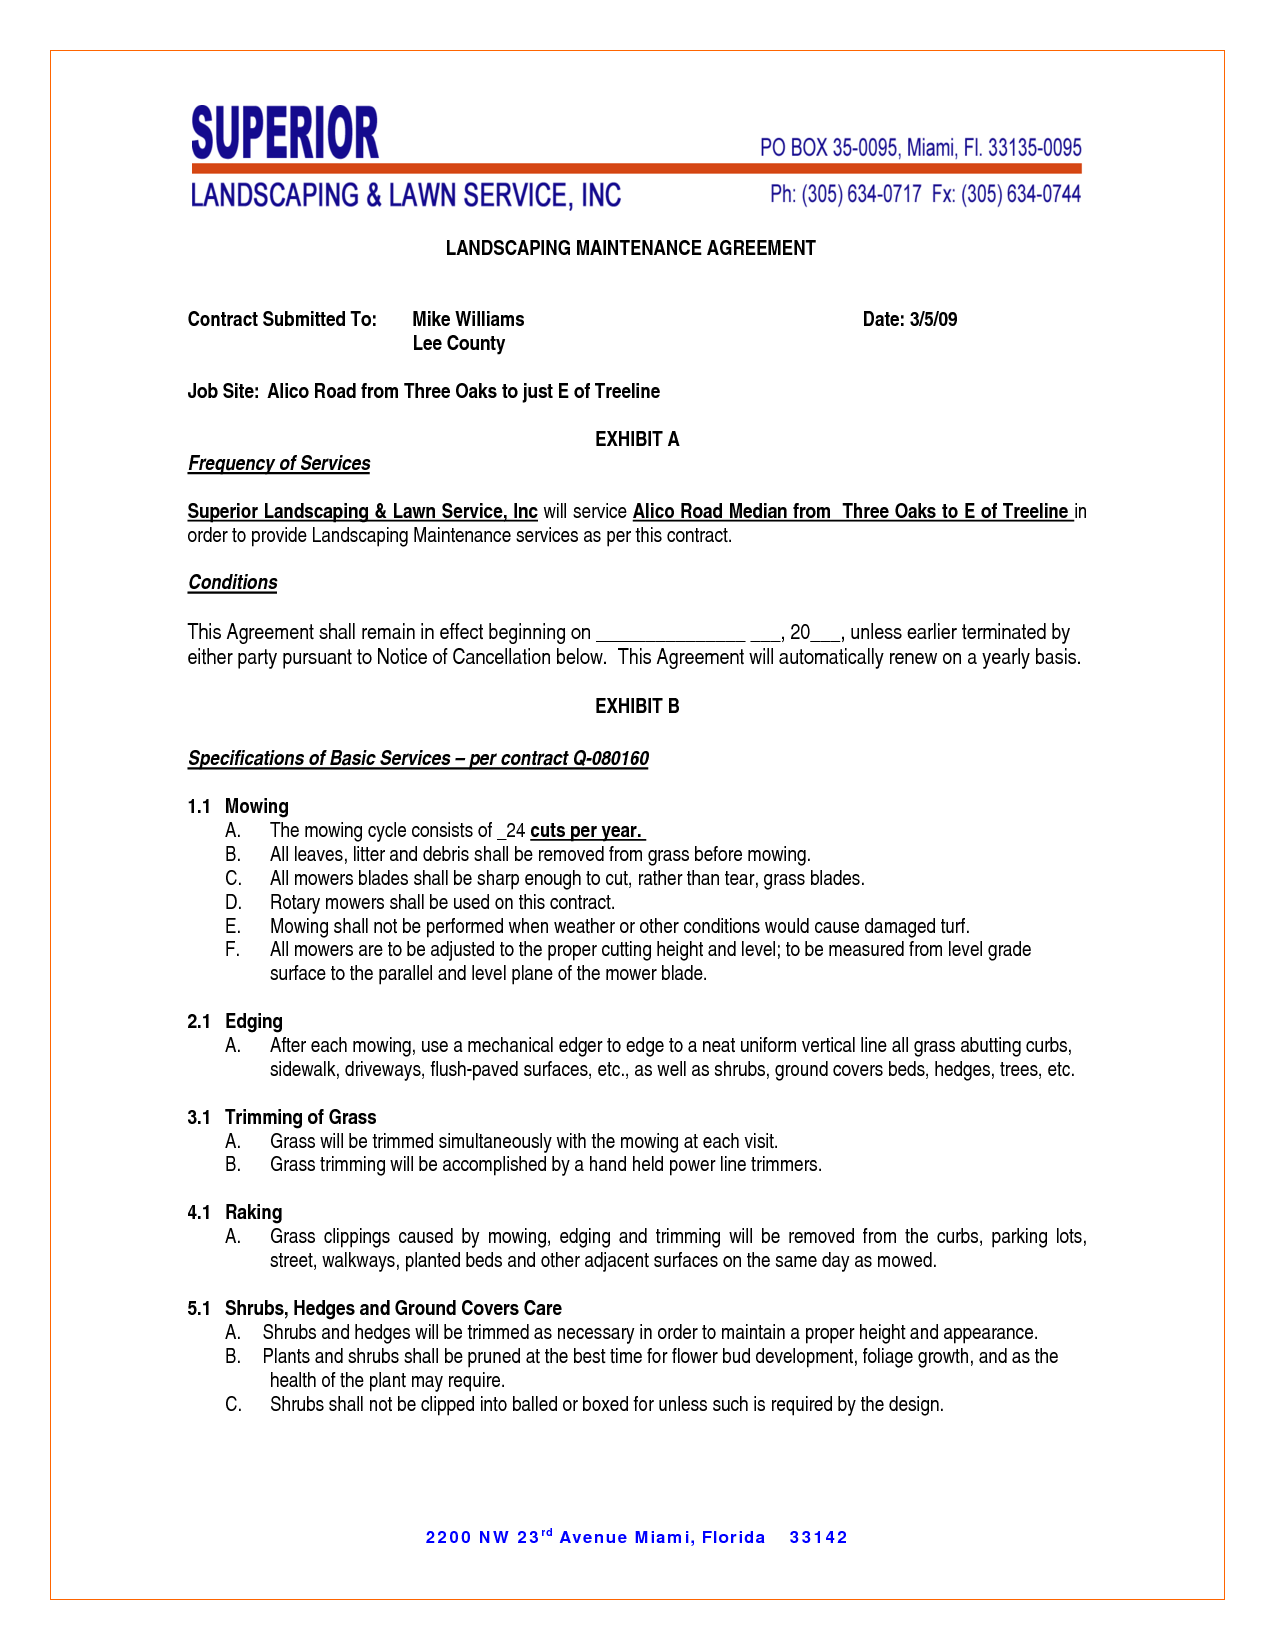 maintenance contract agreement